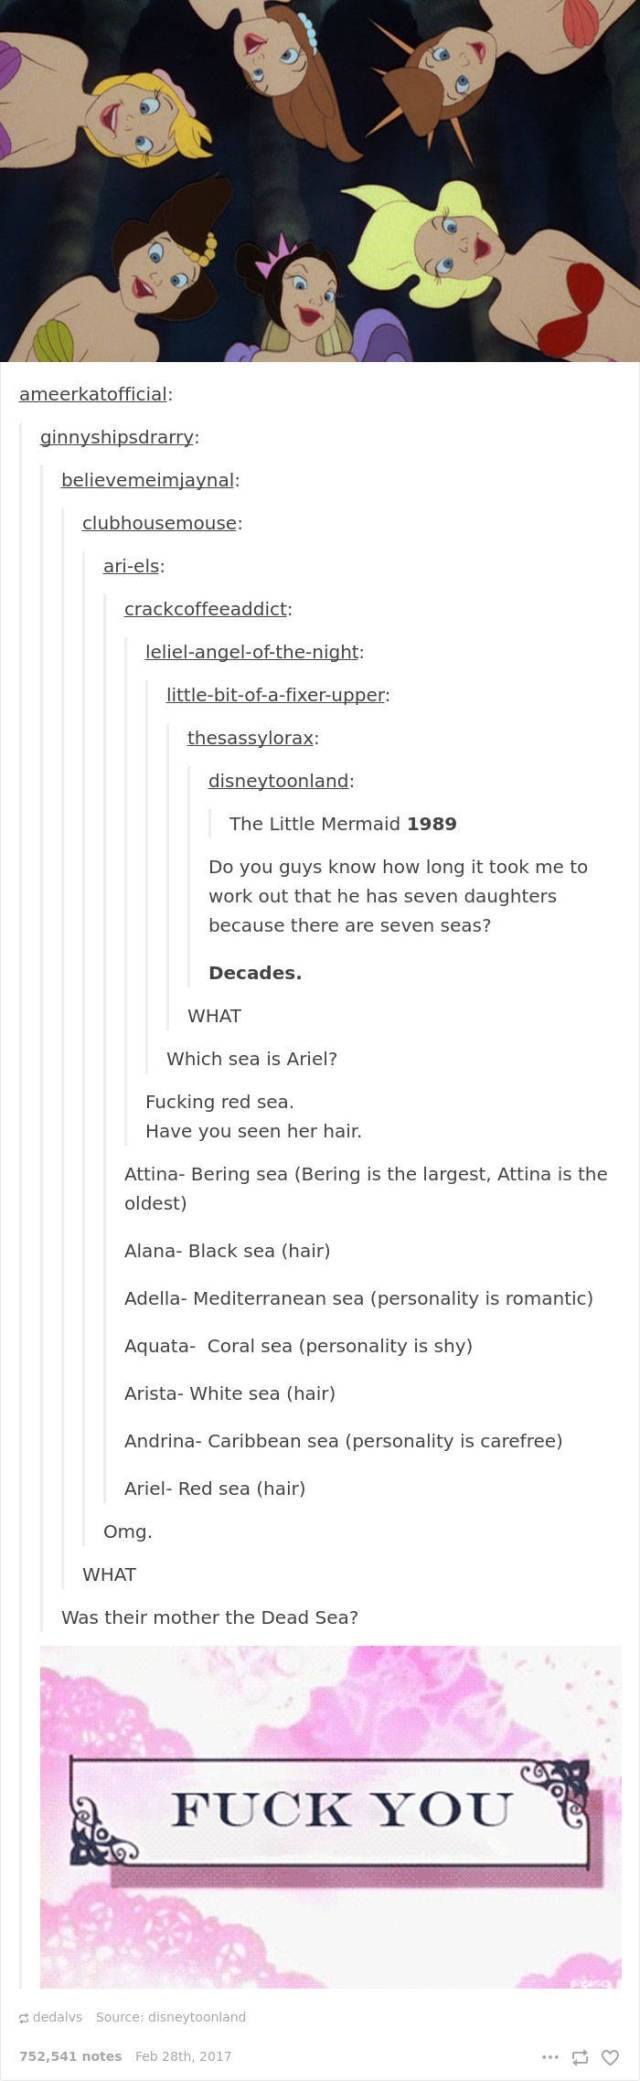 Text - ameerkatofficial: ginnyshipsdrarry: believemeimjaynal: clubhousemouse: ari-els: crackcoffeeaddict leliel-angel-of-the-night: little-bit-of-a-fixer-upper: thesassylorax: disneytoonland: The Little Mermaid 1989 Do you guys know how long it took me to work out that he has seven daughters because there are seven seas? Decades. WHAT Which sea is Ariel? Fucking red sea. Have you seen her hair. Attina- Bering sea (Bering is the largest, Attina is the oldest) Alana- Black sea (hair) Adella- Medit